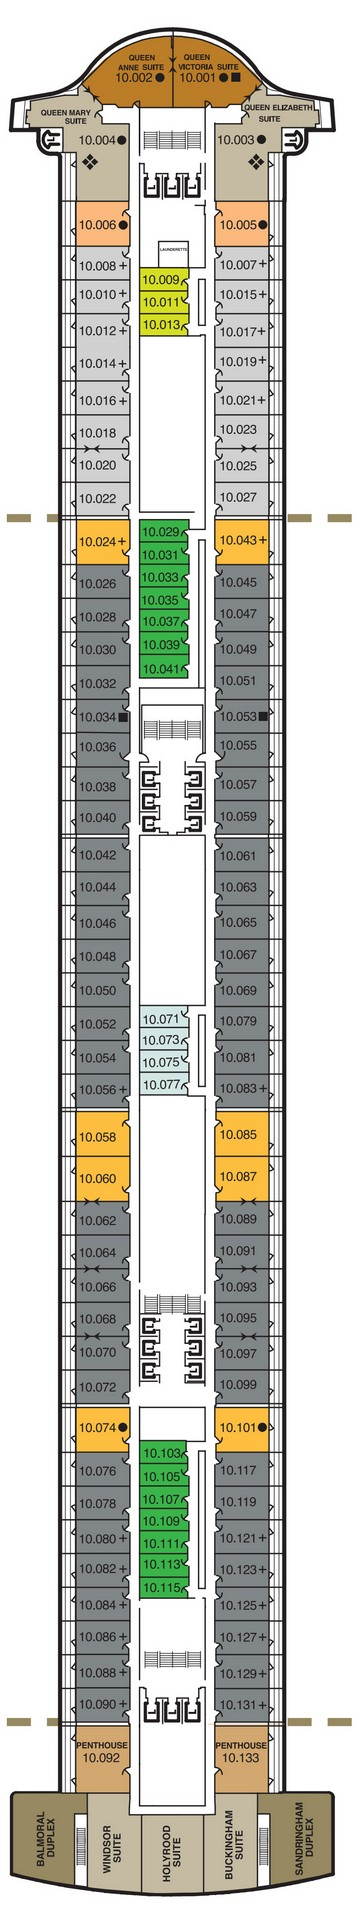 Queen Mary 2 Deck 10 layout